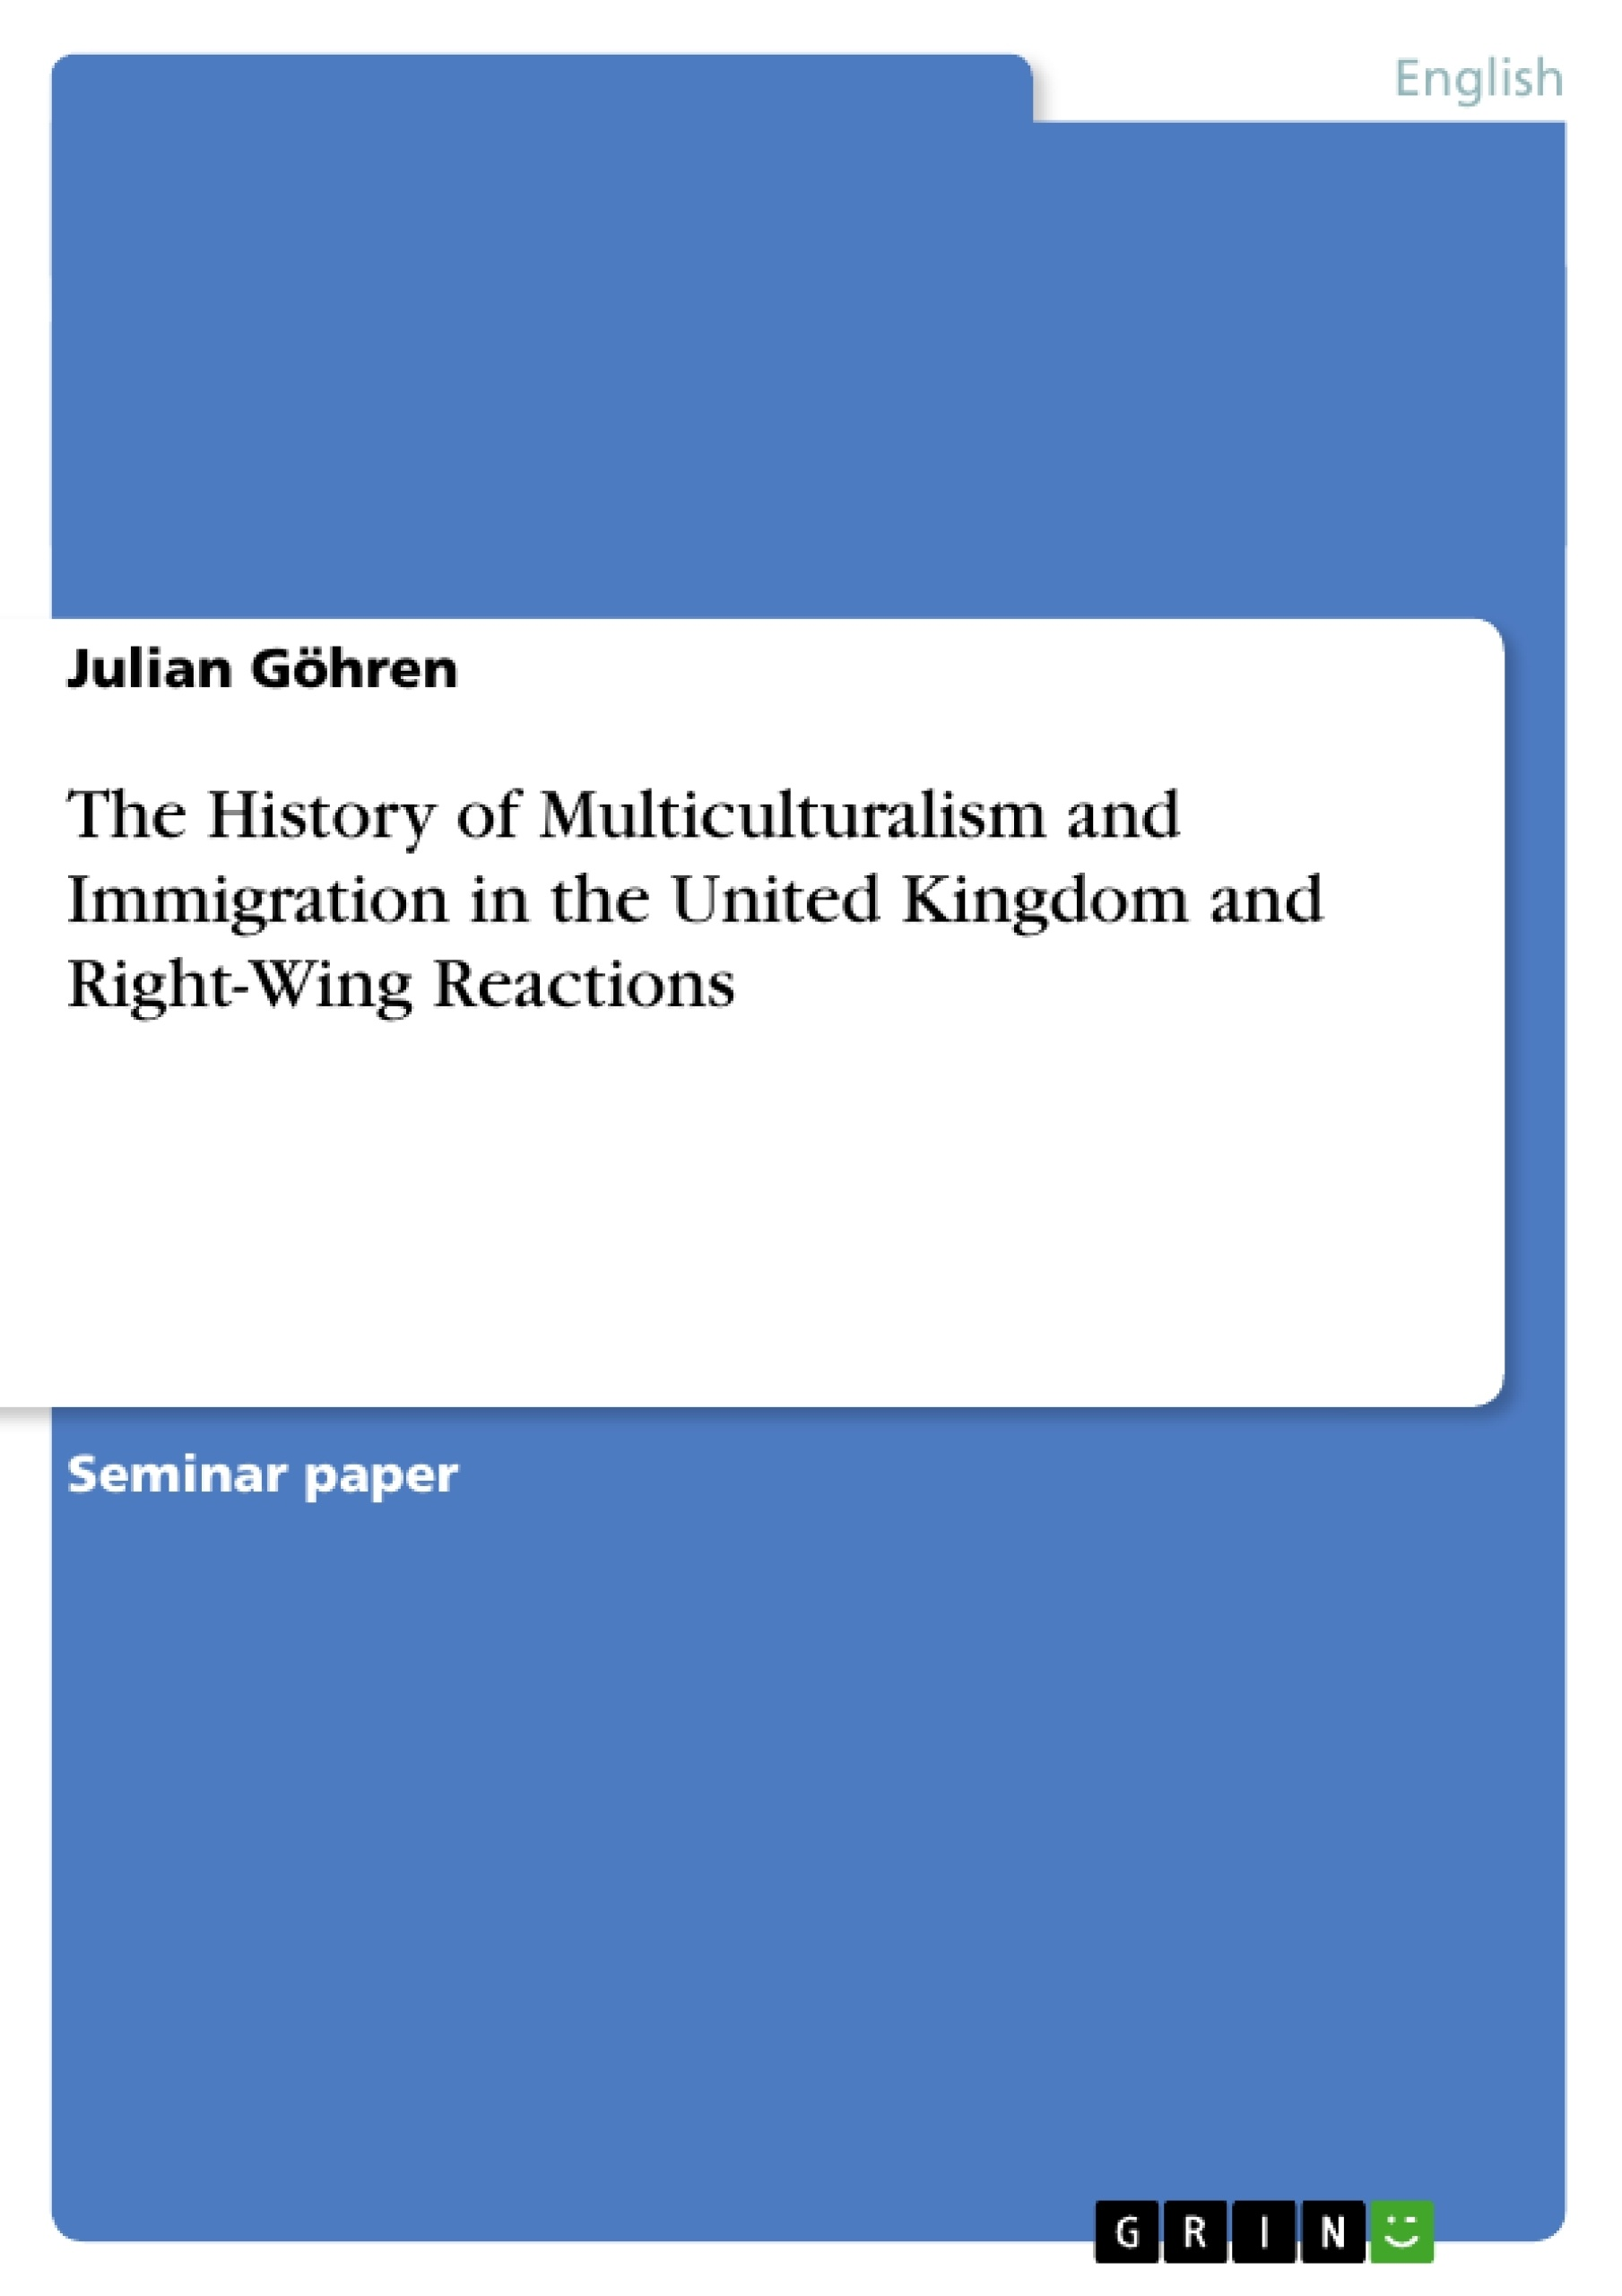 Title: The History of Multiculturalism and Immigration in the United Kingdom and Right-Wing Reactions